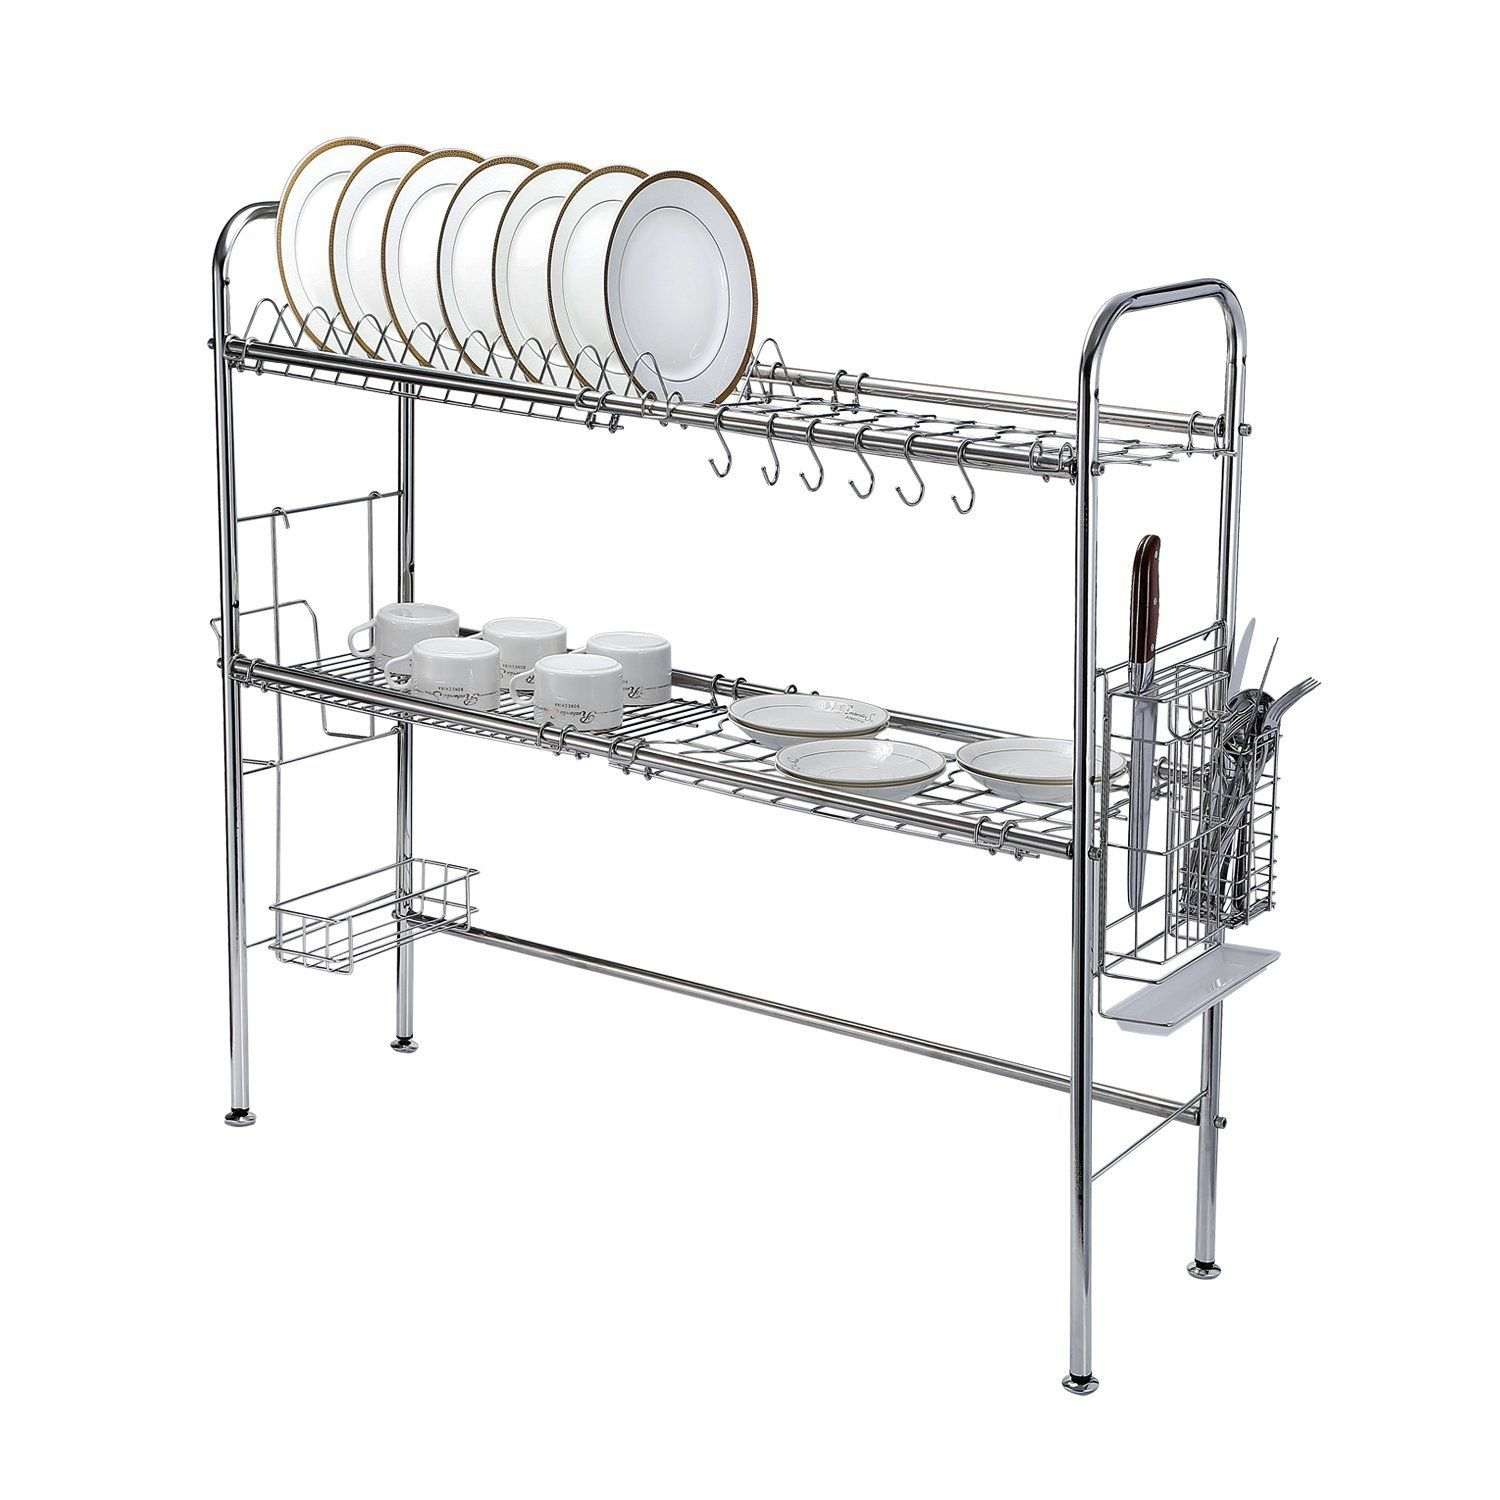 KuanGuang Kitchen Stainless Steel 2 Tier Dish Drainer Rack Holder  Organization Shelf Over The Sink